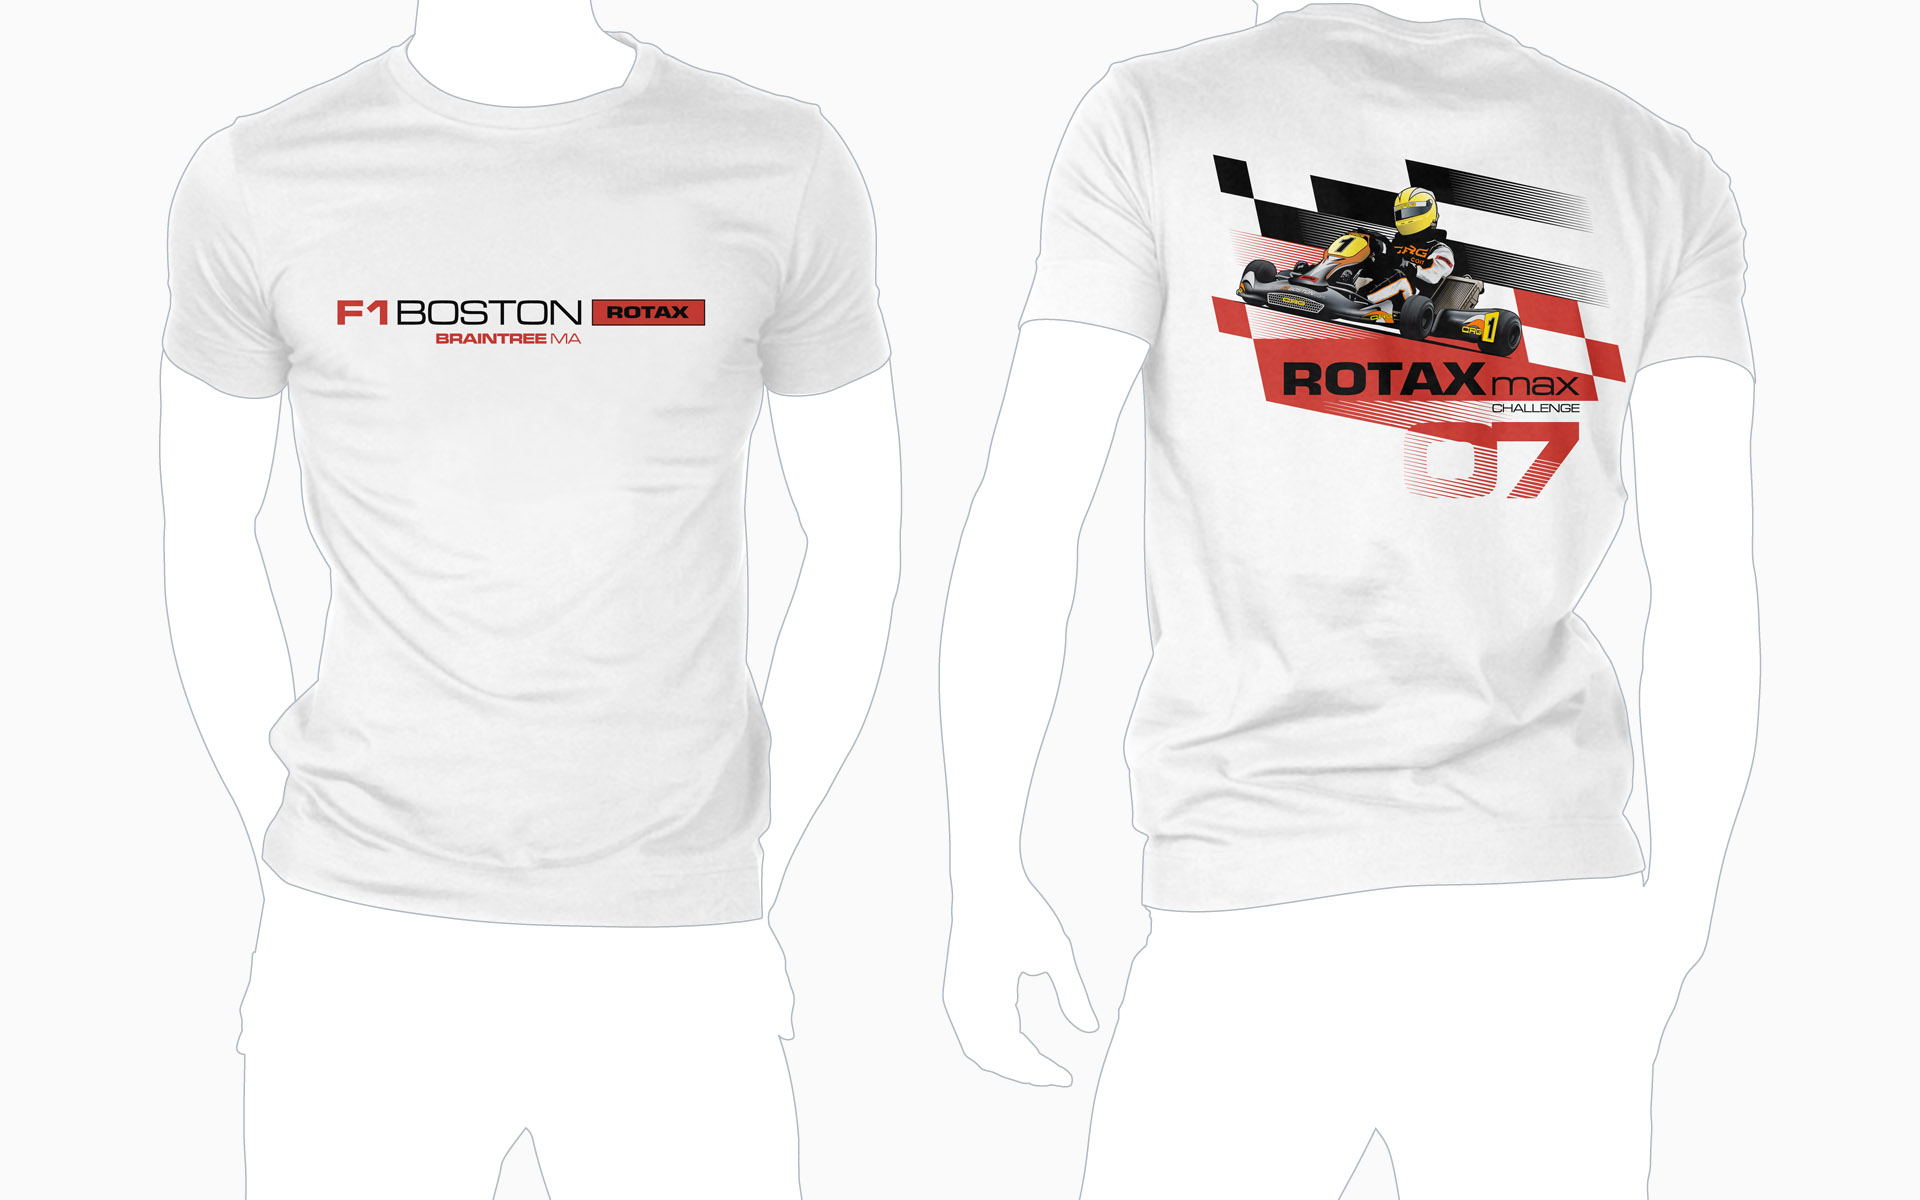 F1 Boston T-Shirt